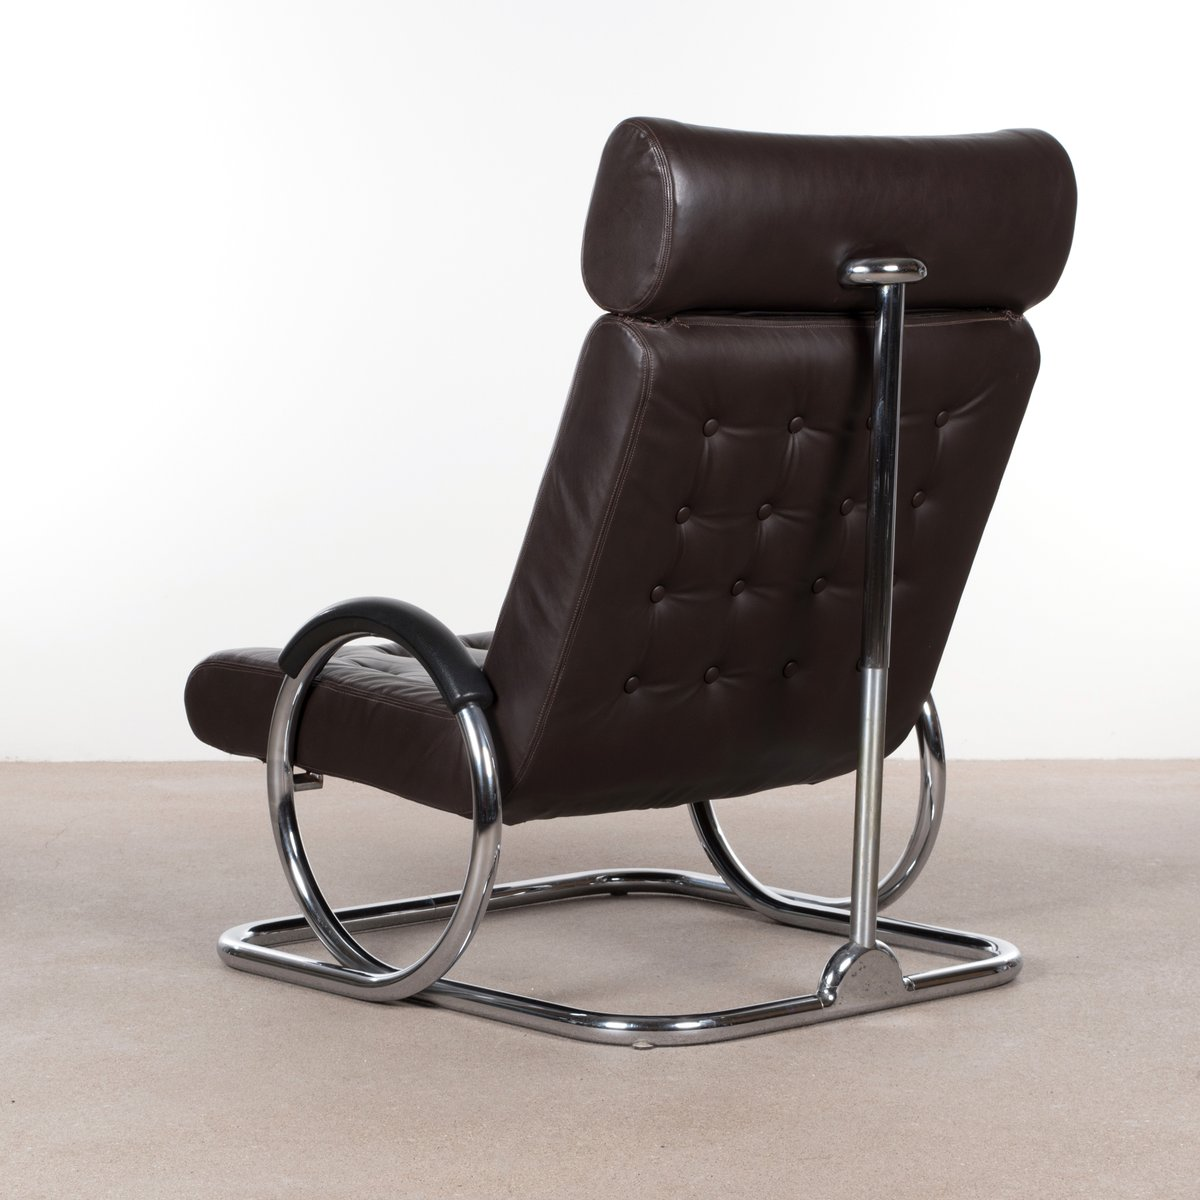 Syncro Lounge Chair From Herman Miller, 1975 13. $2,549.00. Price Per Piece